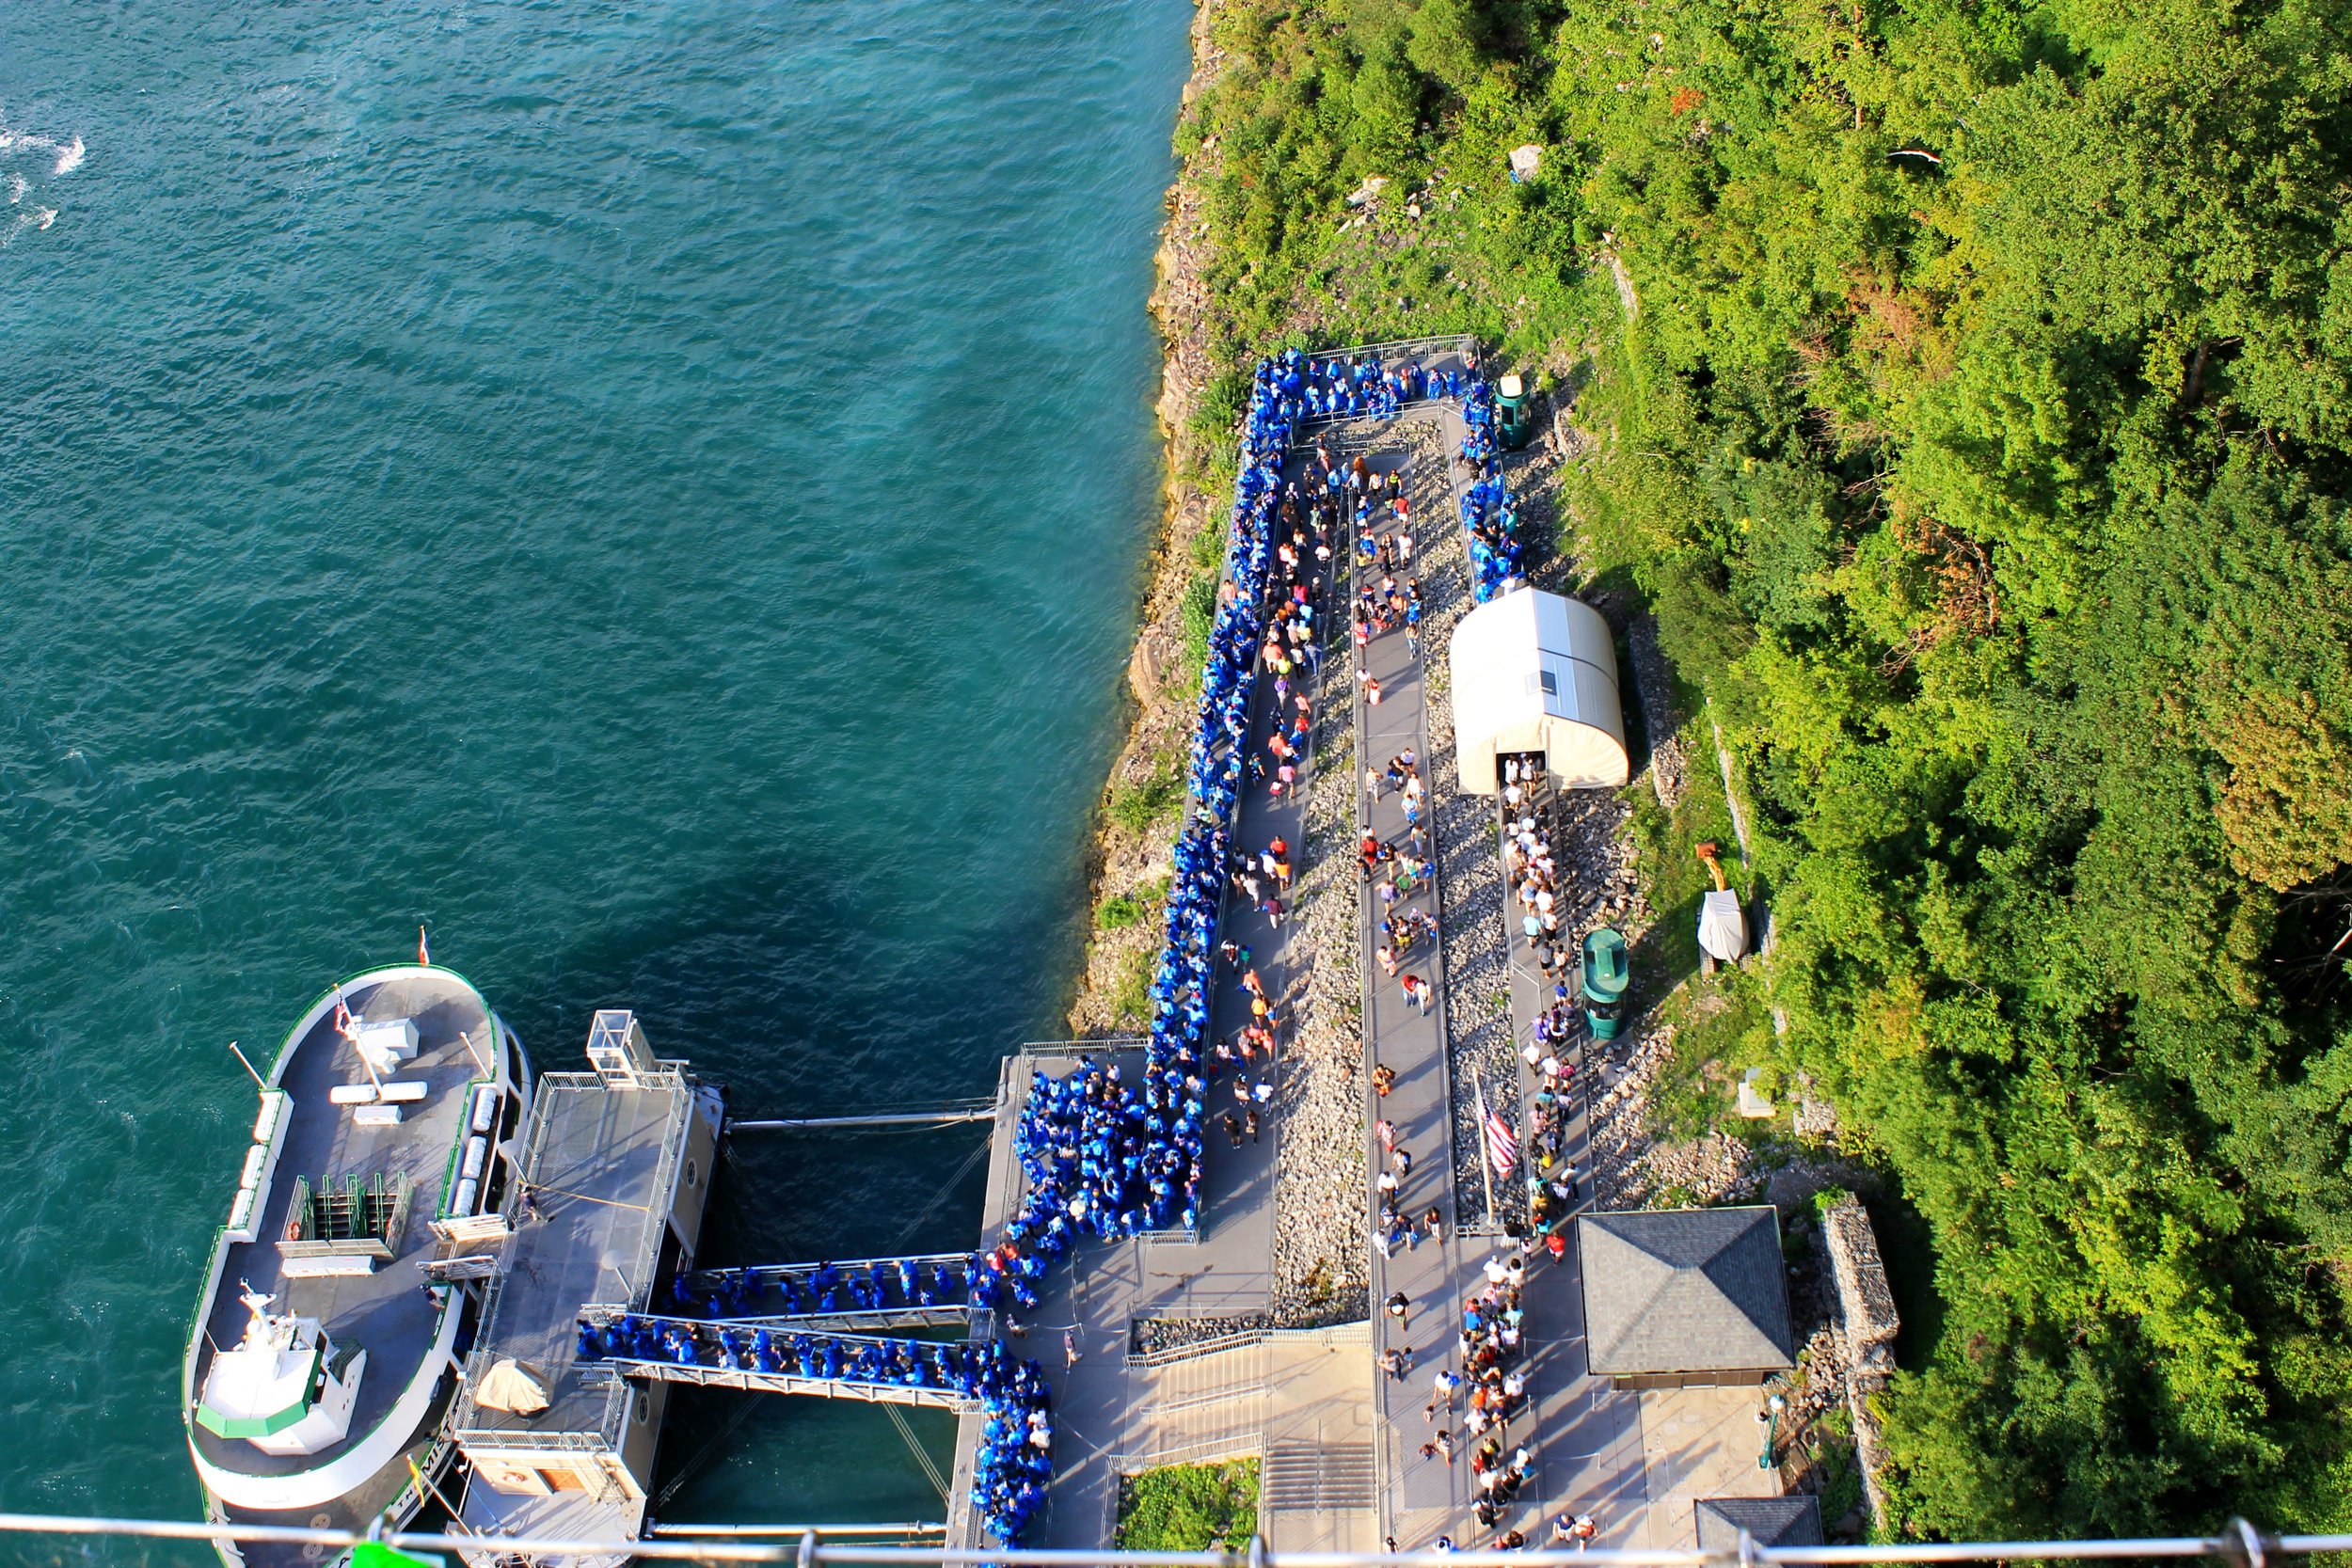 The crazy line for Maid of the Mist